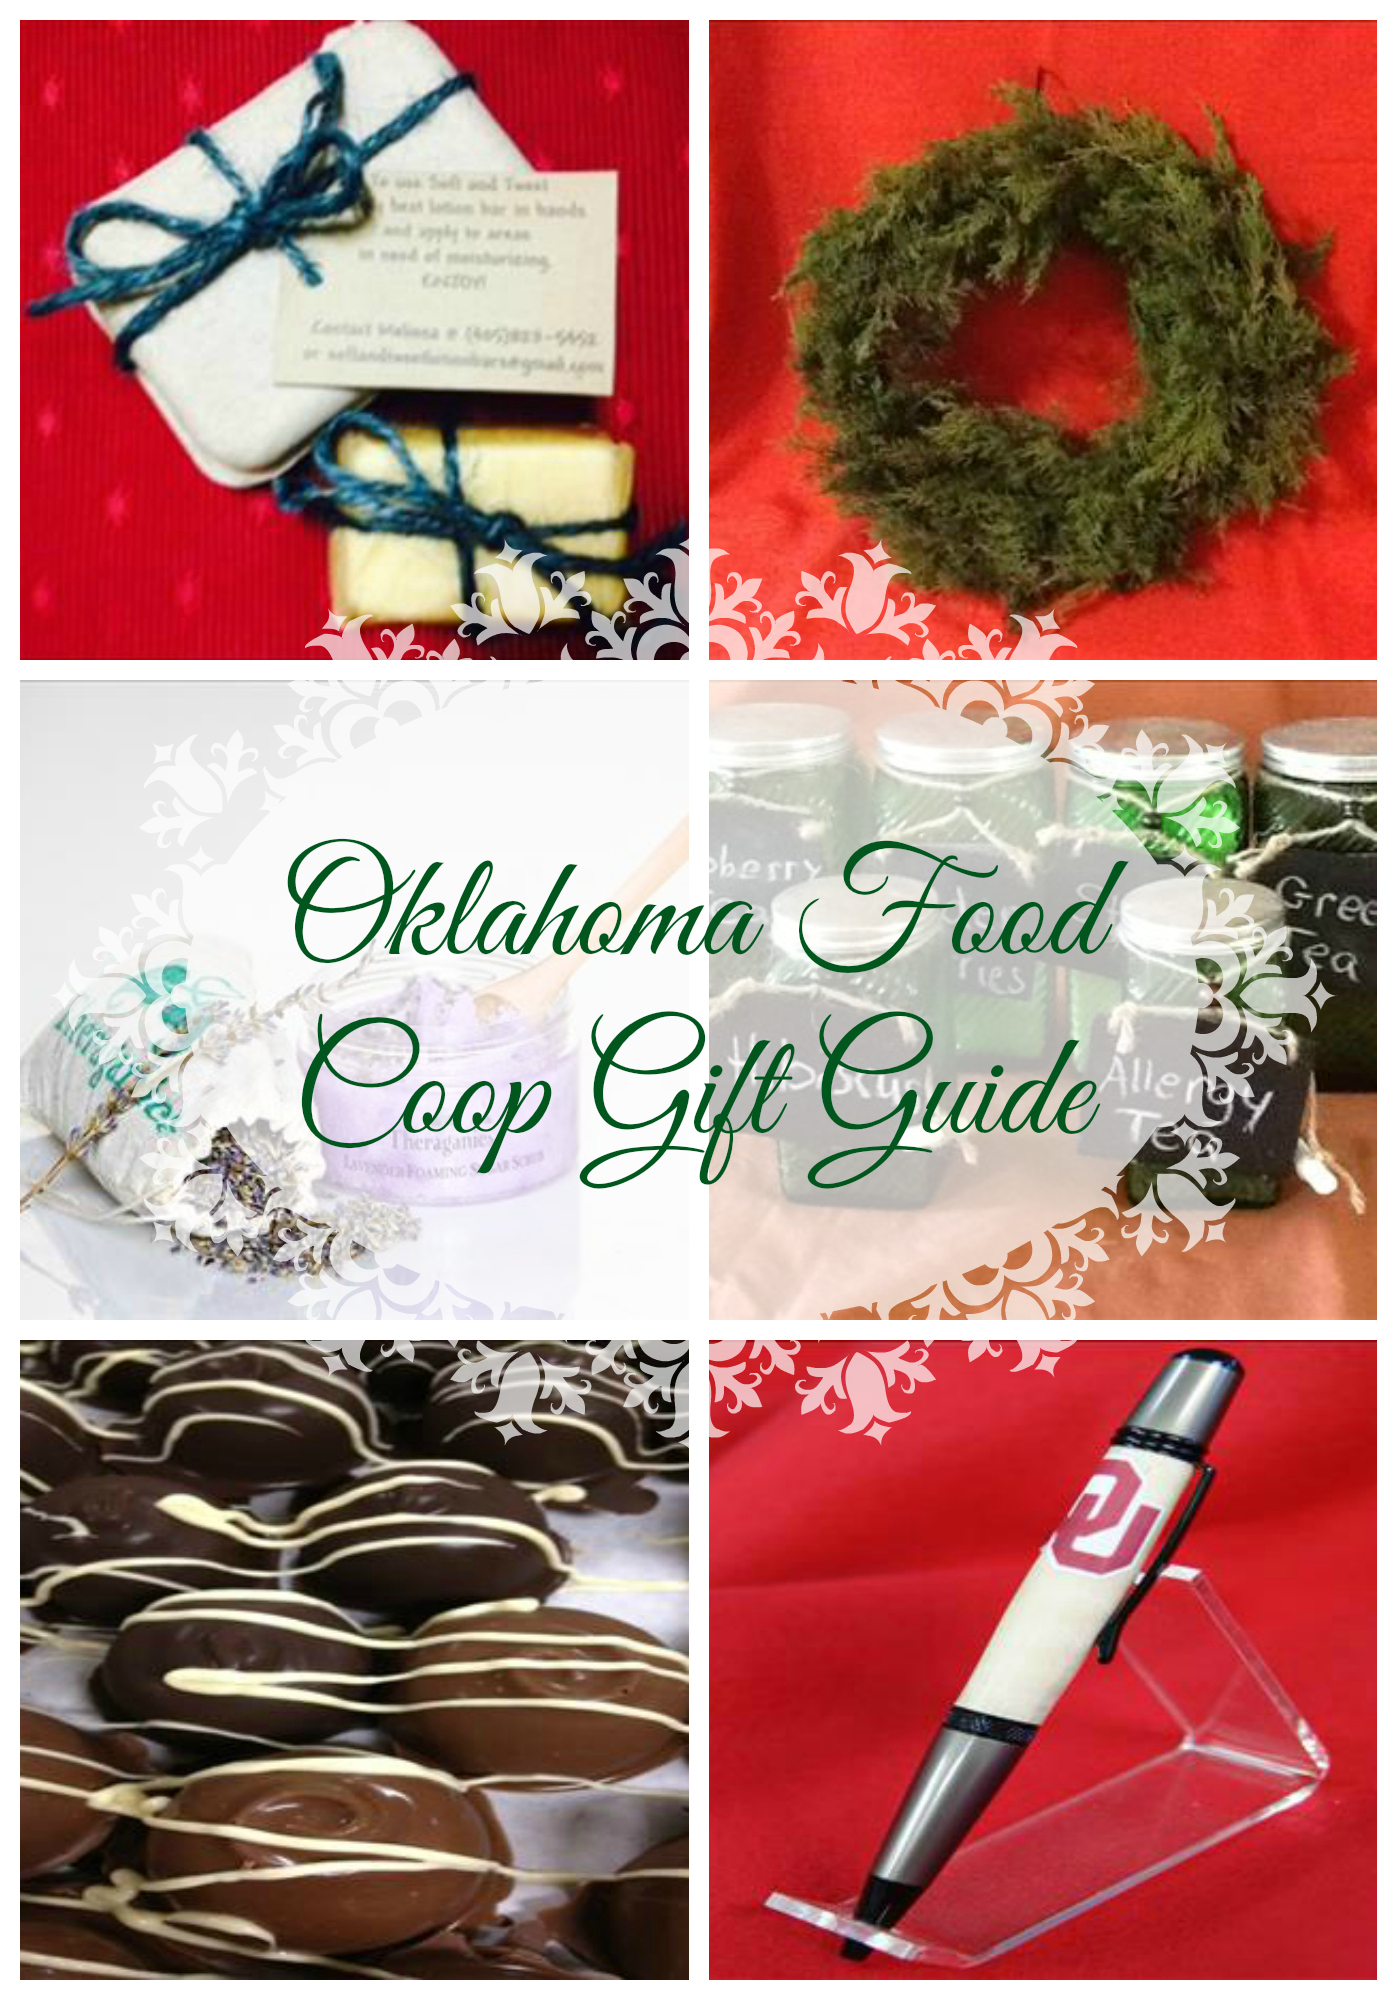 Oklahoma Food Coop Gift Guide